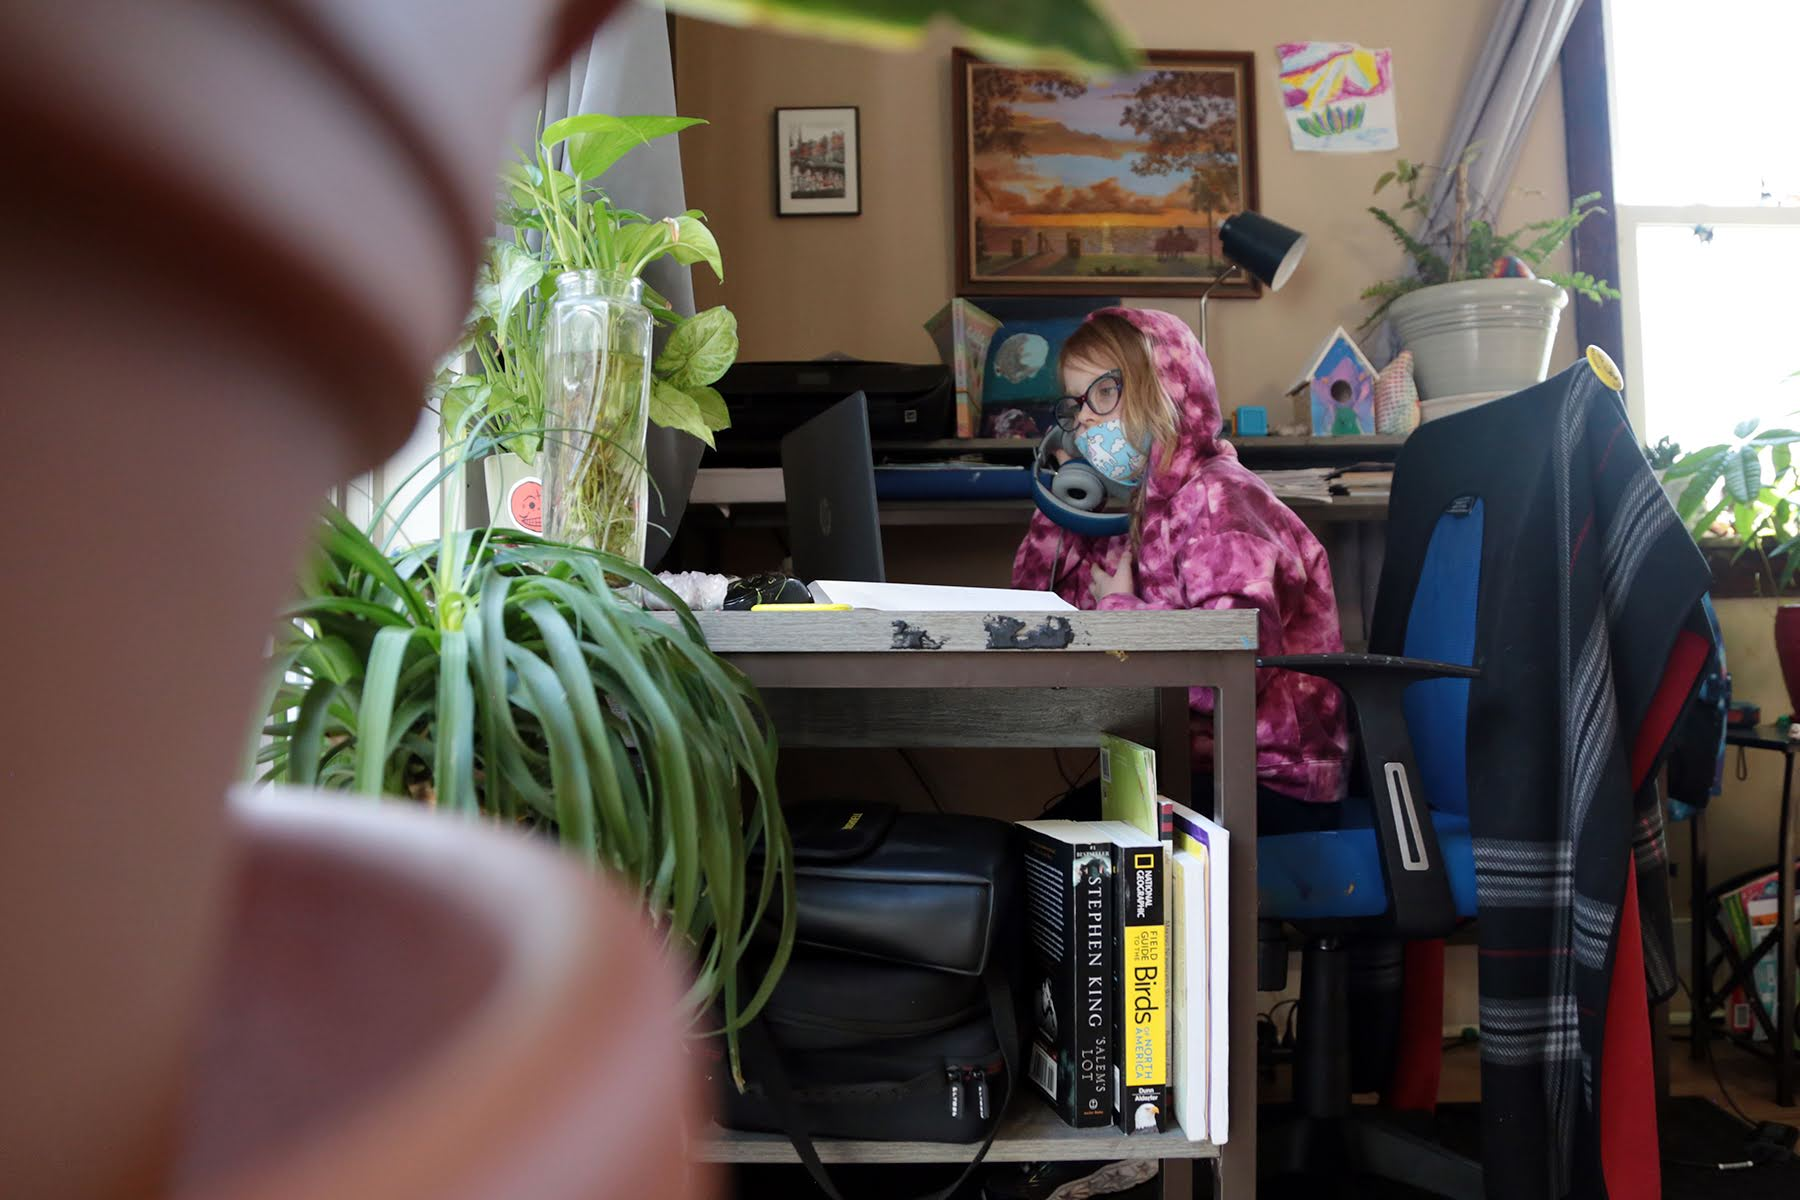 Zora Klobuchar, 7, a second grader at Myrtle Avenue Elementary School in Castle Shannon, does school work at home. (Photo by Ryan Loew/PublicSource)